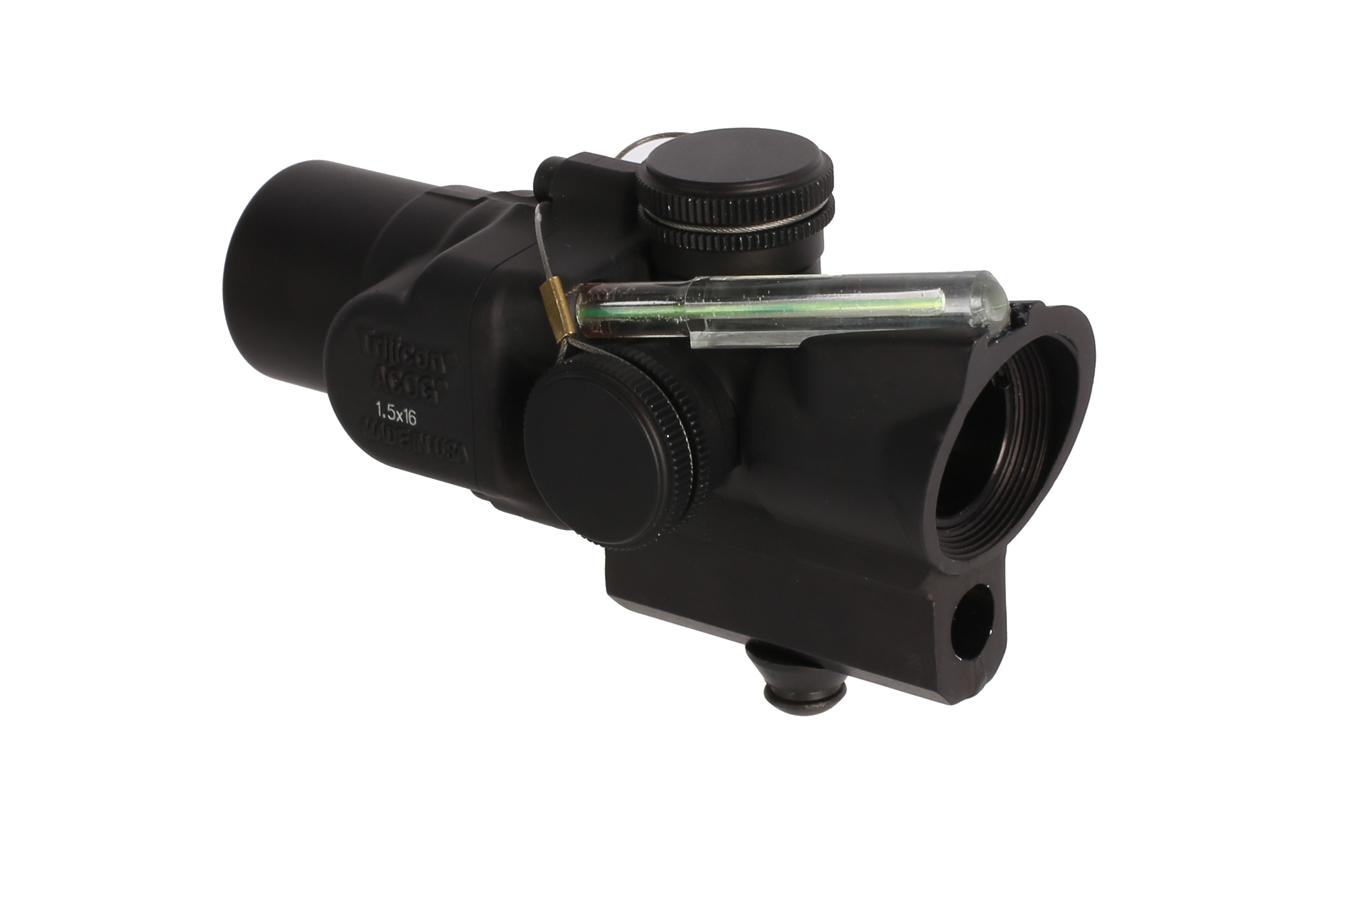 Trijicon ACOG 1.5x16S High Compact Scope - Dual Illuminated ACSS CQB-M5 - Green